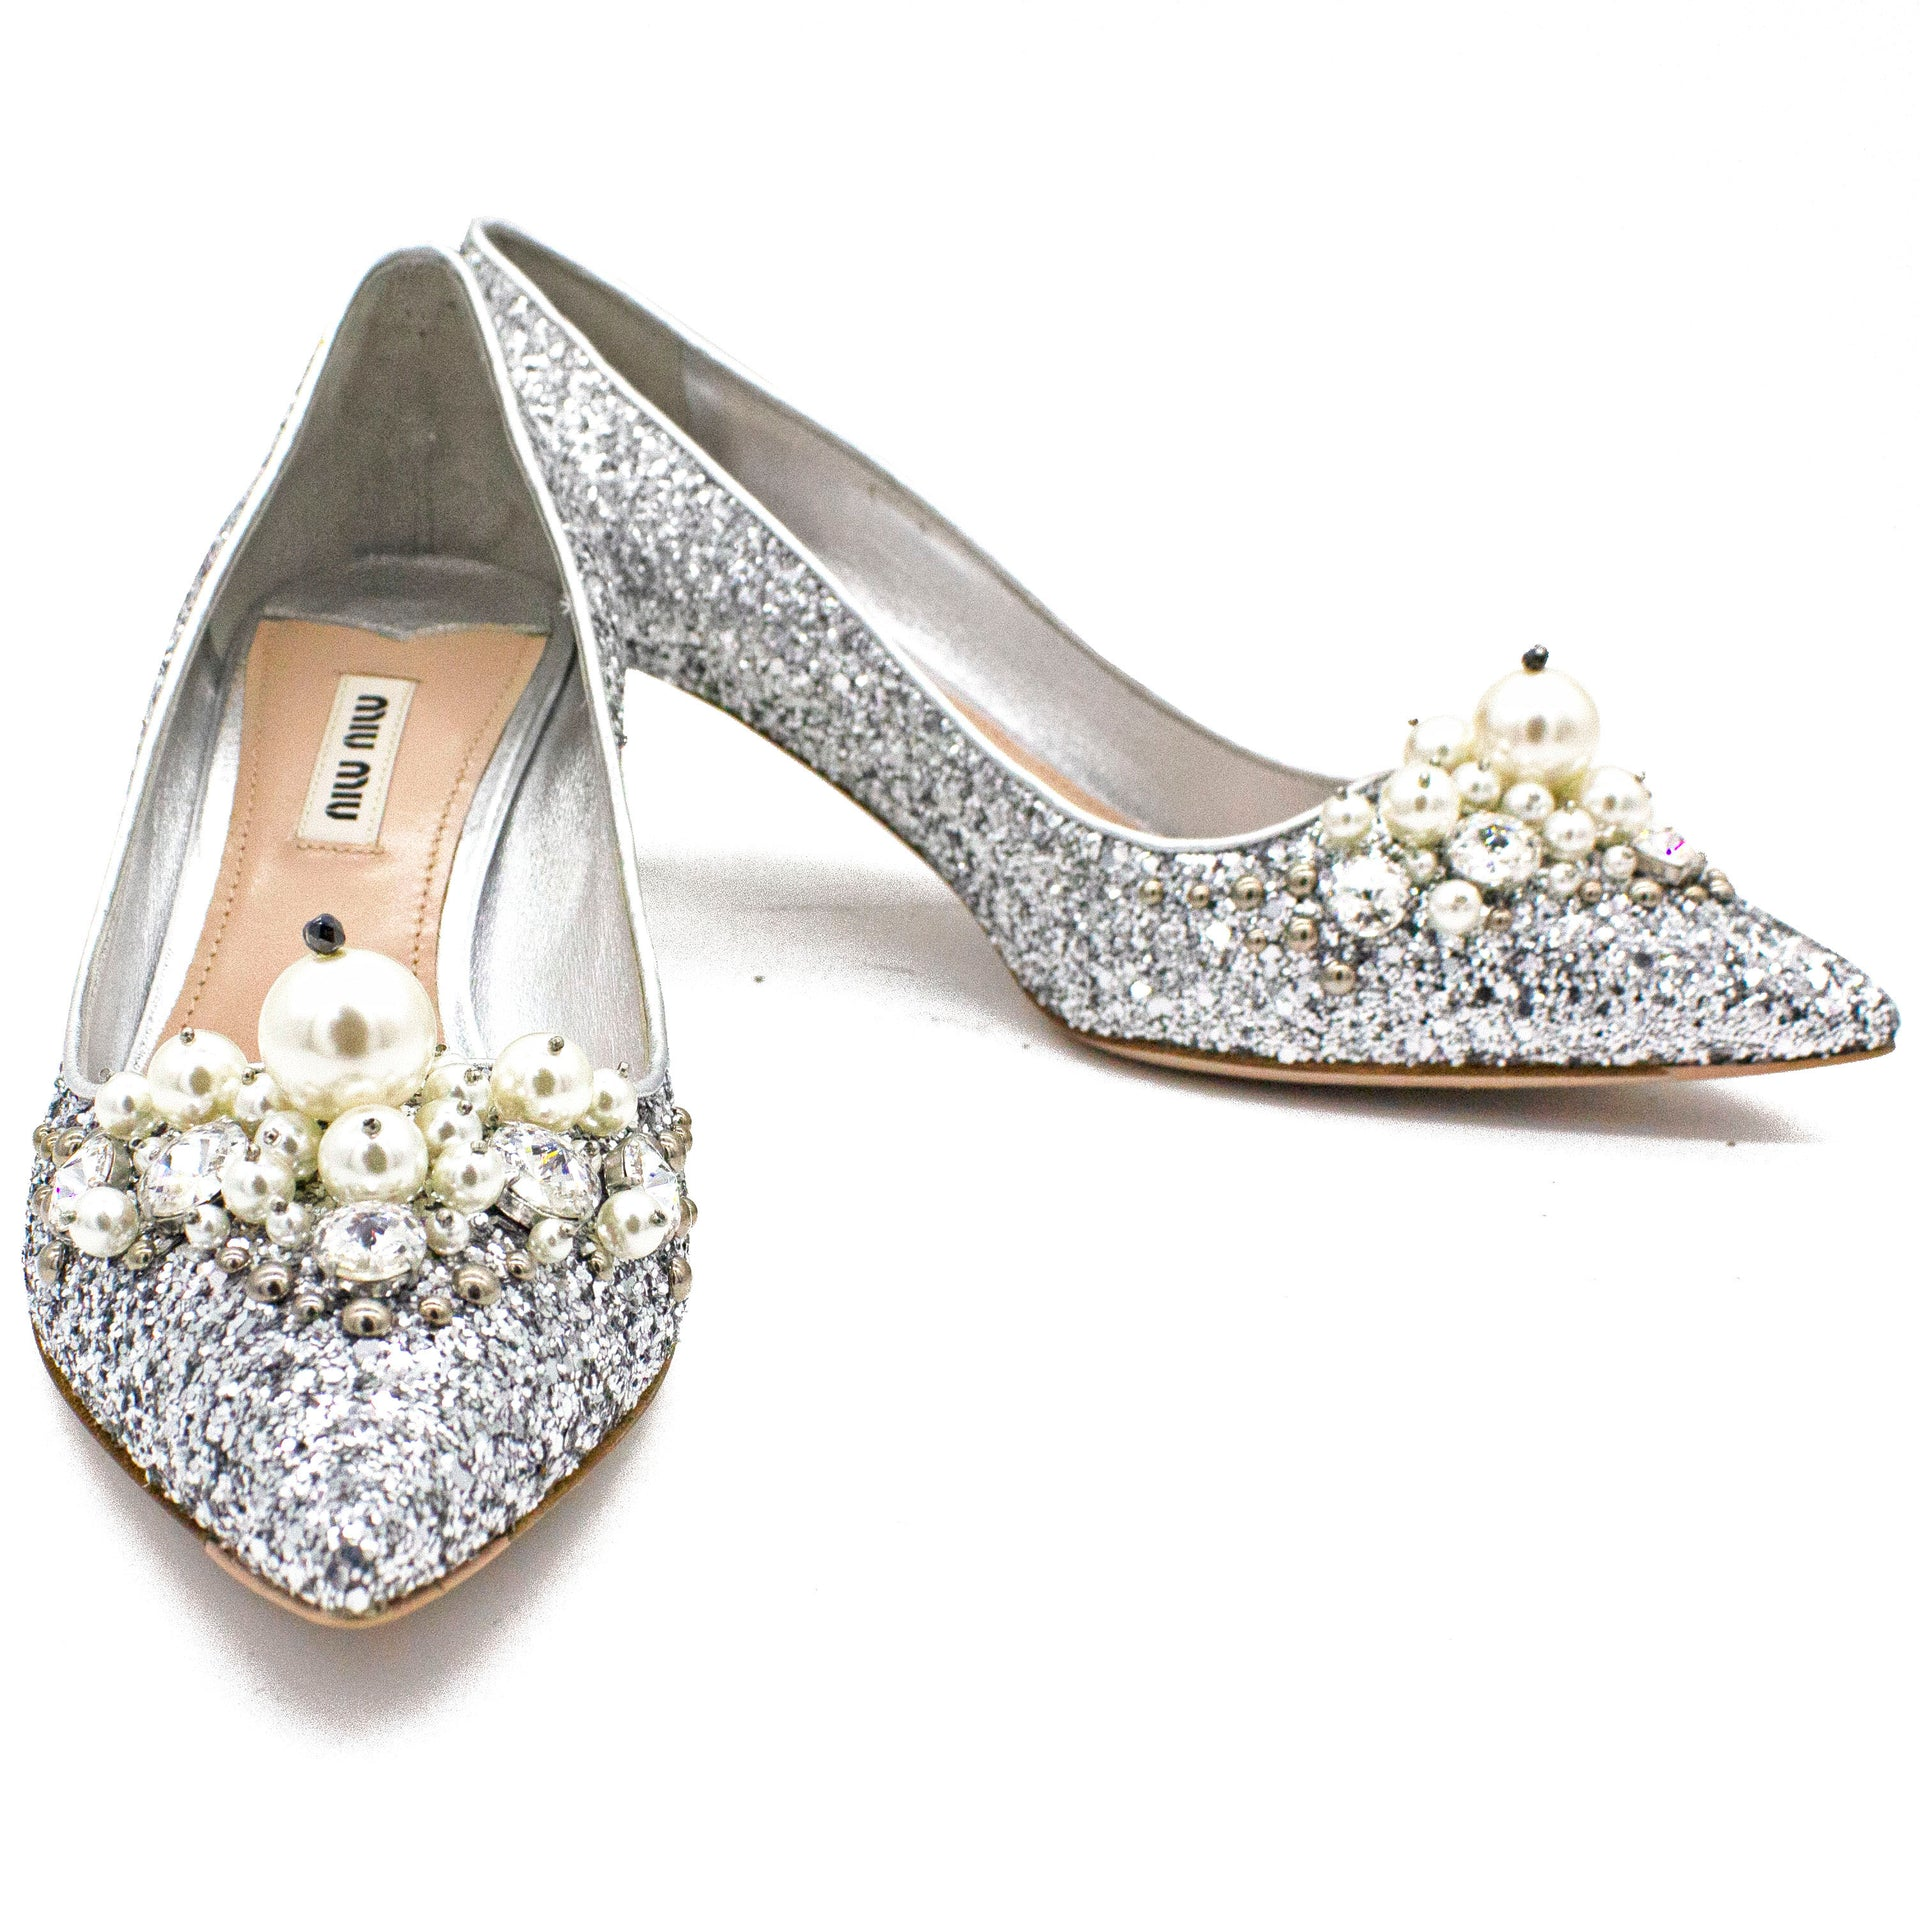 Pearl Embellished Pointed Toe Pumps